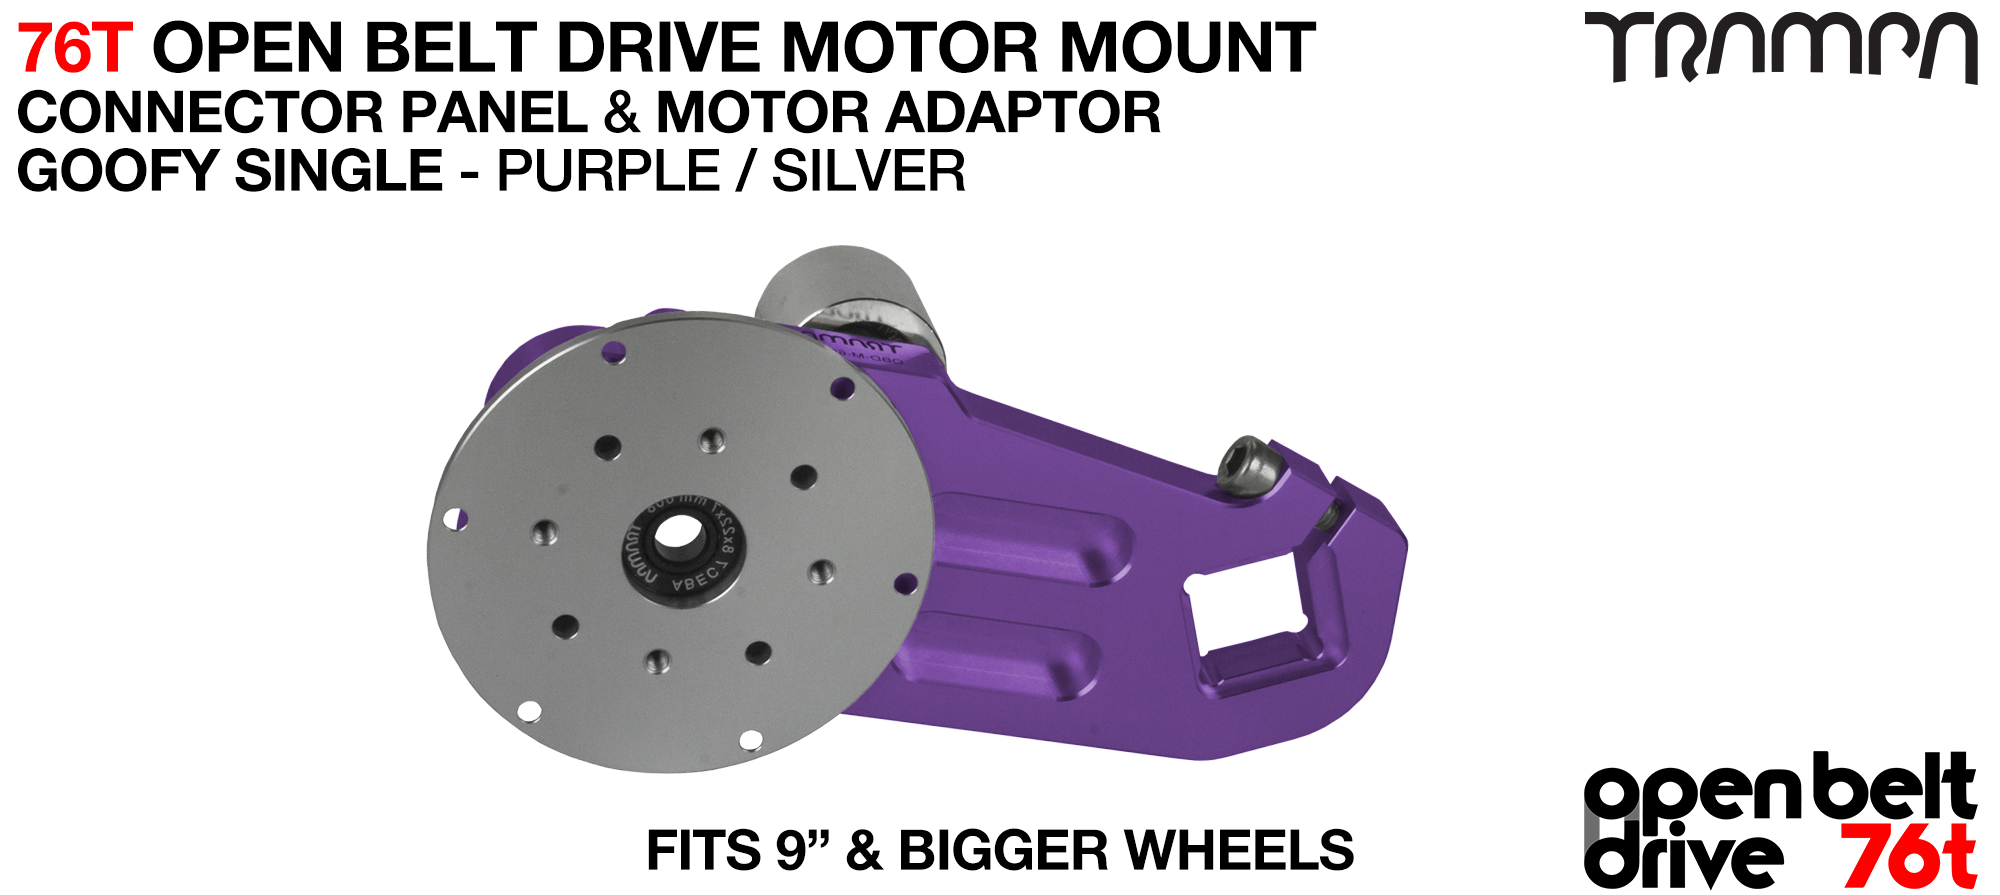 76T Open Belt Drive Motor Mount & Motor Adaptor - SINGLE PURPLE